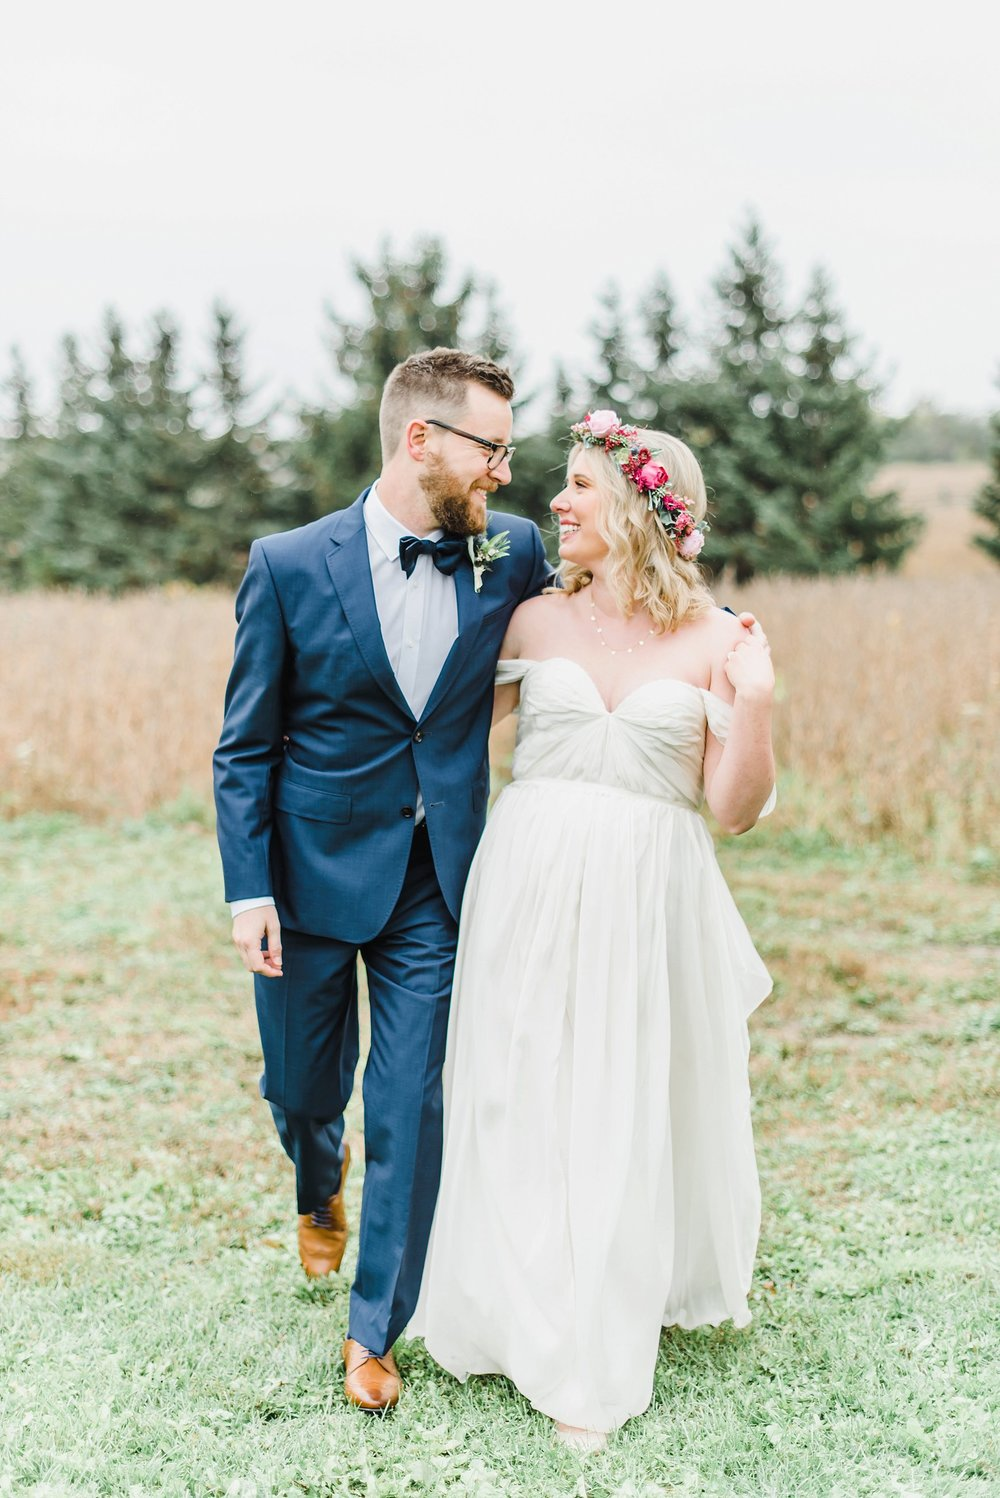 light airy indie fine art ottawa wedding photographer | Ali and Batoul Photography_0827.jpg